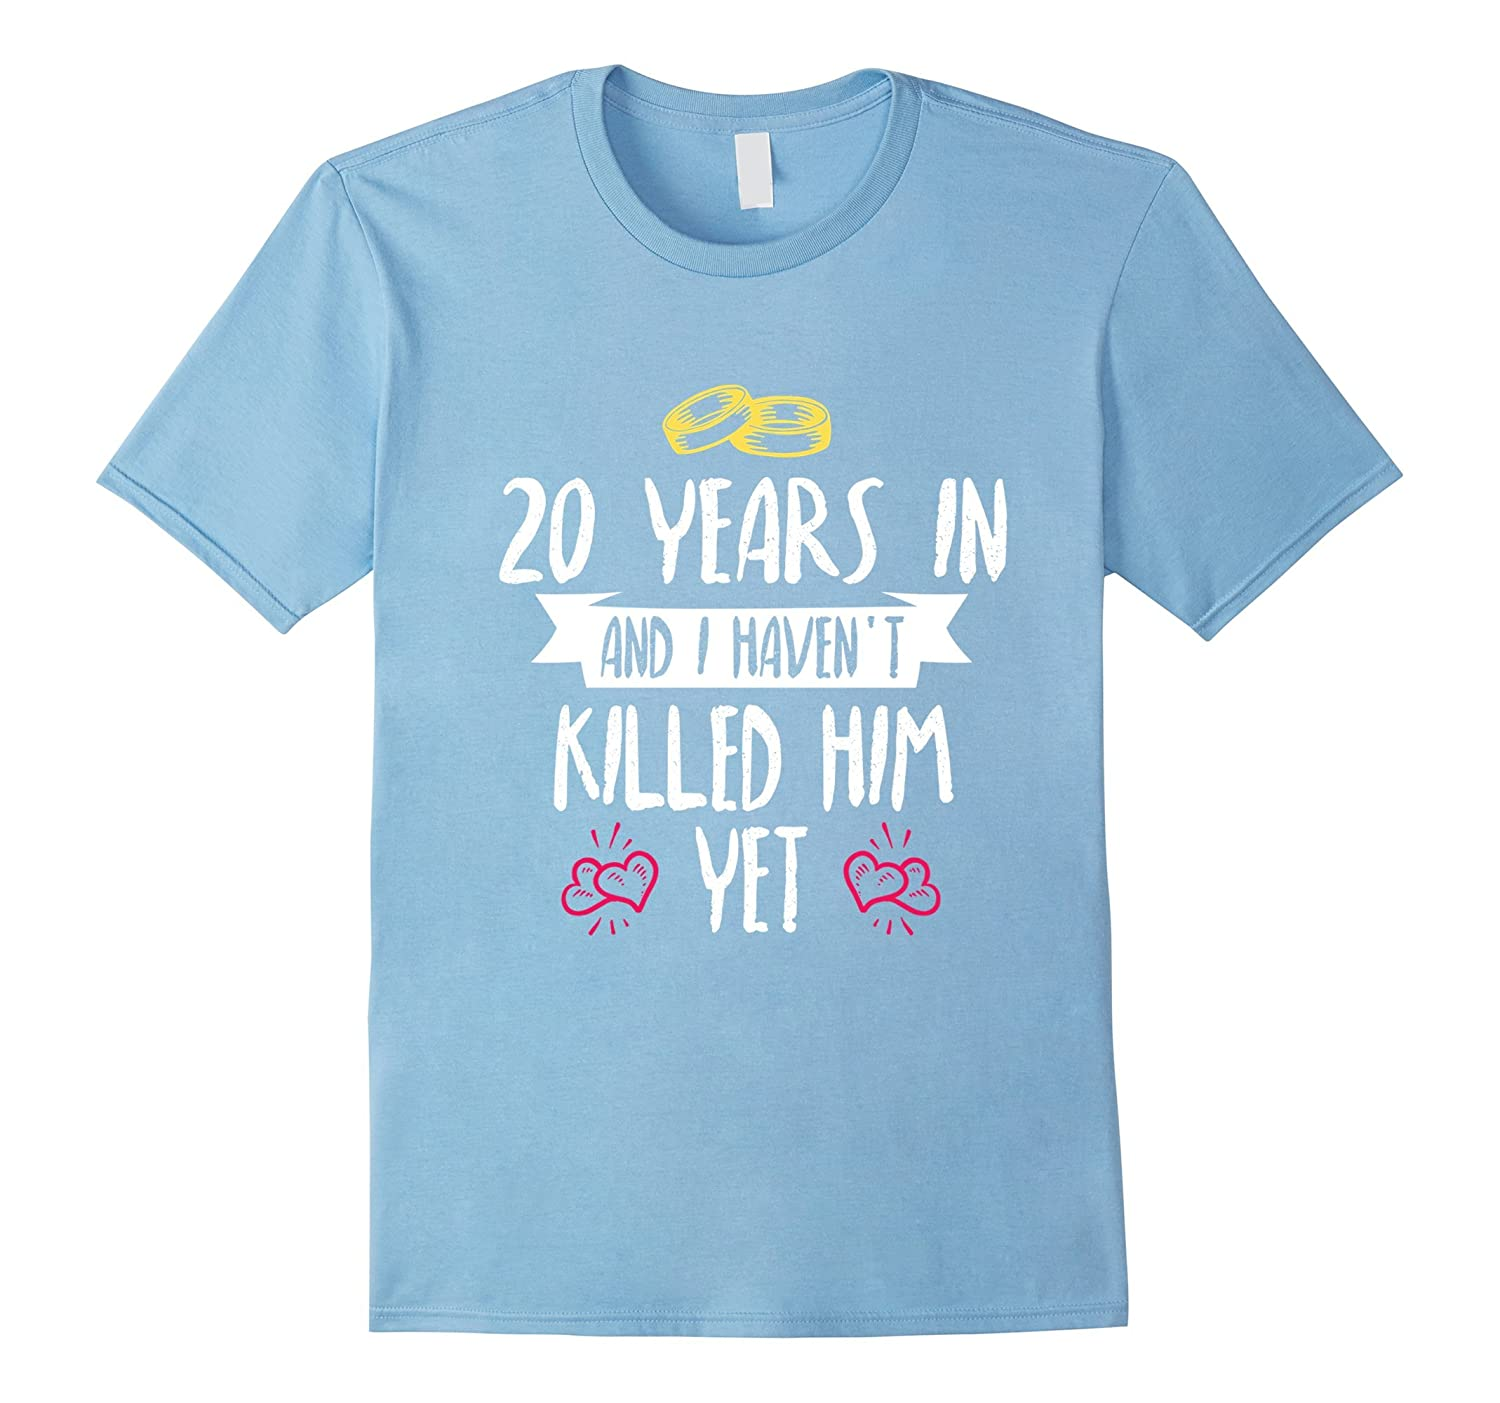 20 Years Anniversary Gift Idea for Her – 20 Years In T-Shirt